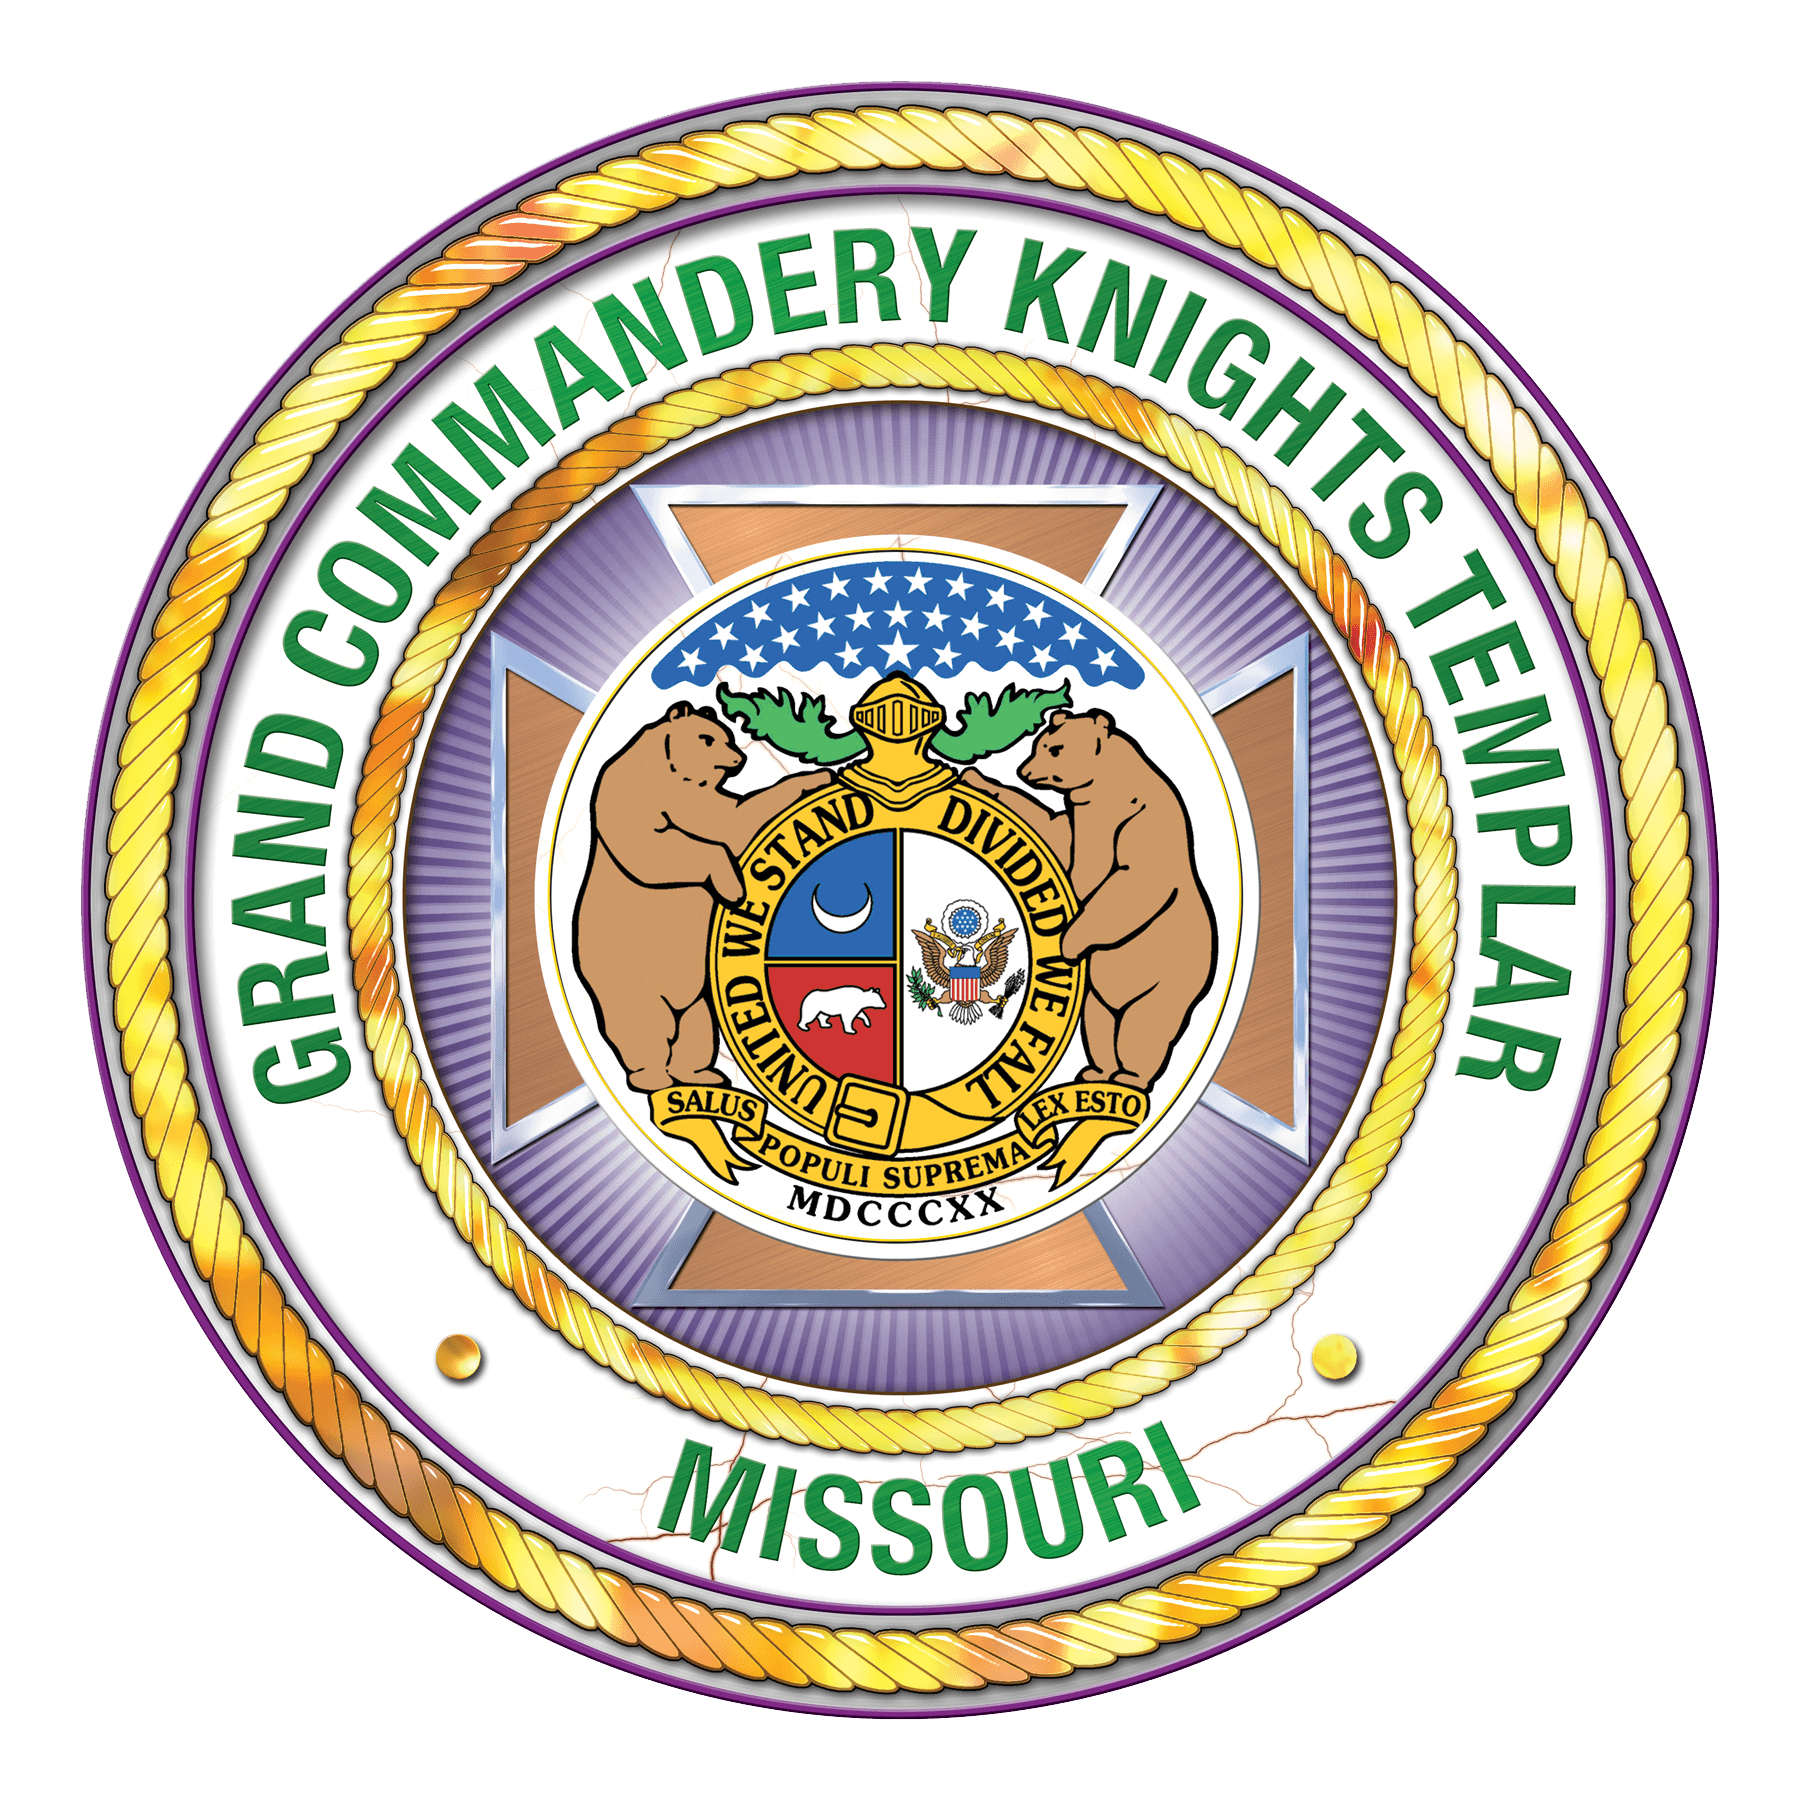 ABOUT THE KNIGHTS TEMPLAR - Grand York Rite of Missouri